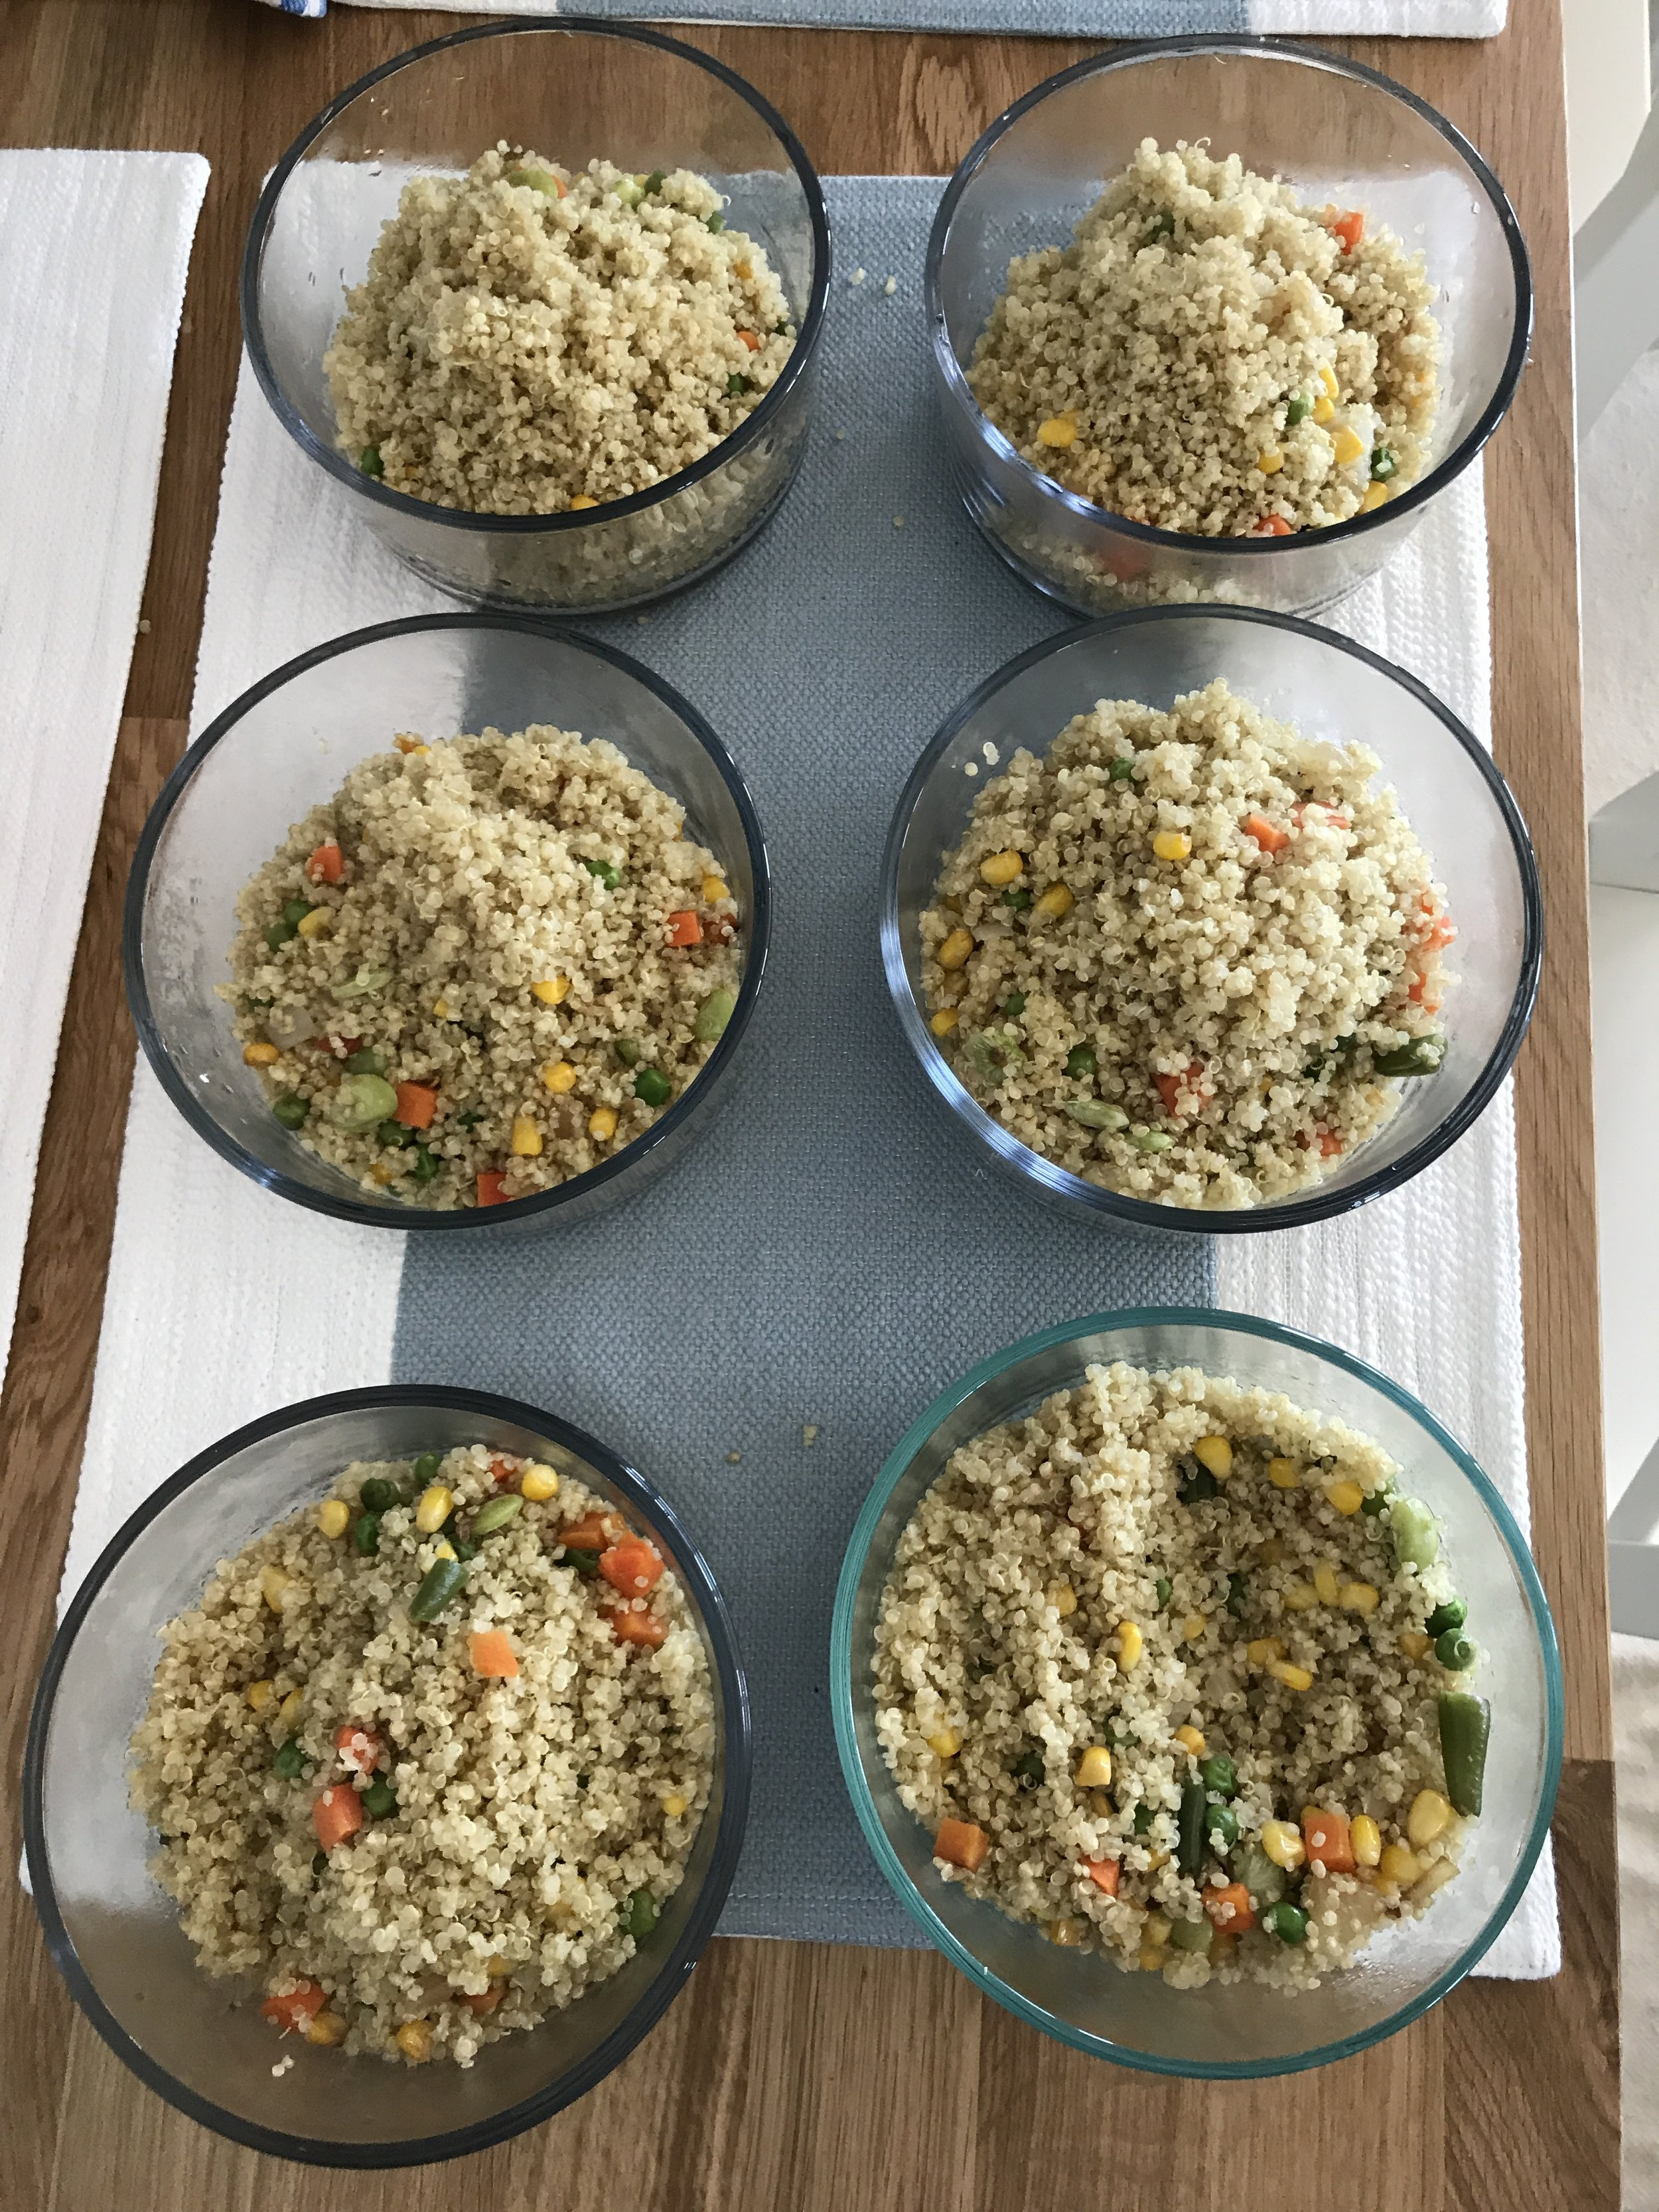 Featured is a fabulous quinoa medly option - mix of fun veggies, cooked down yellow onion